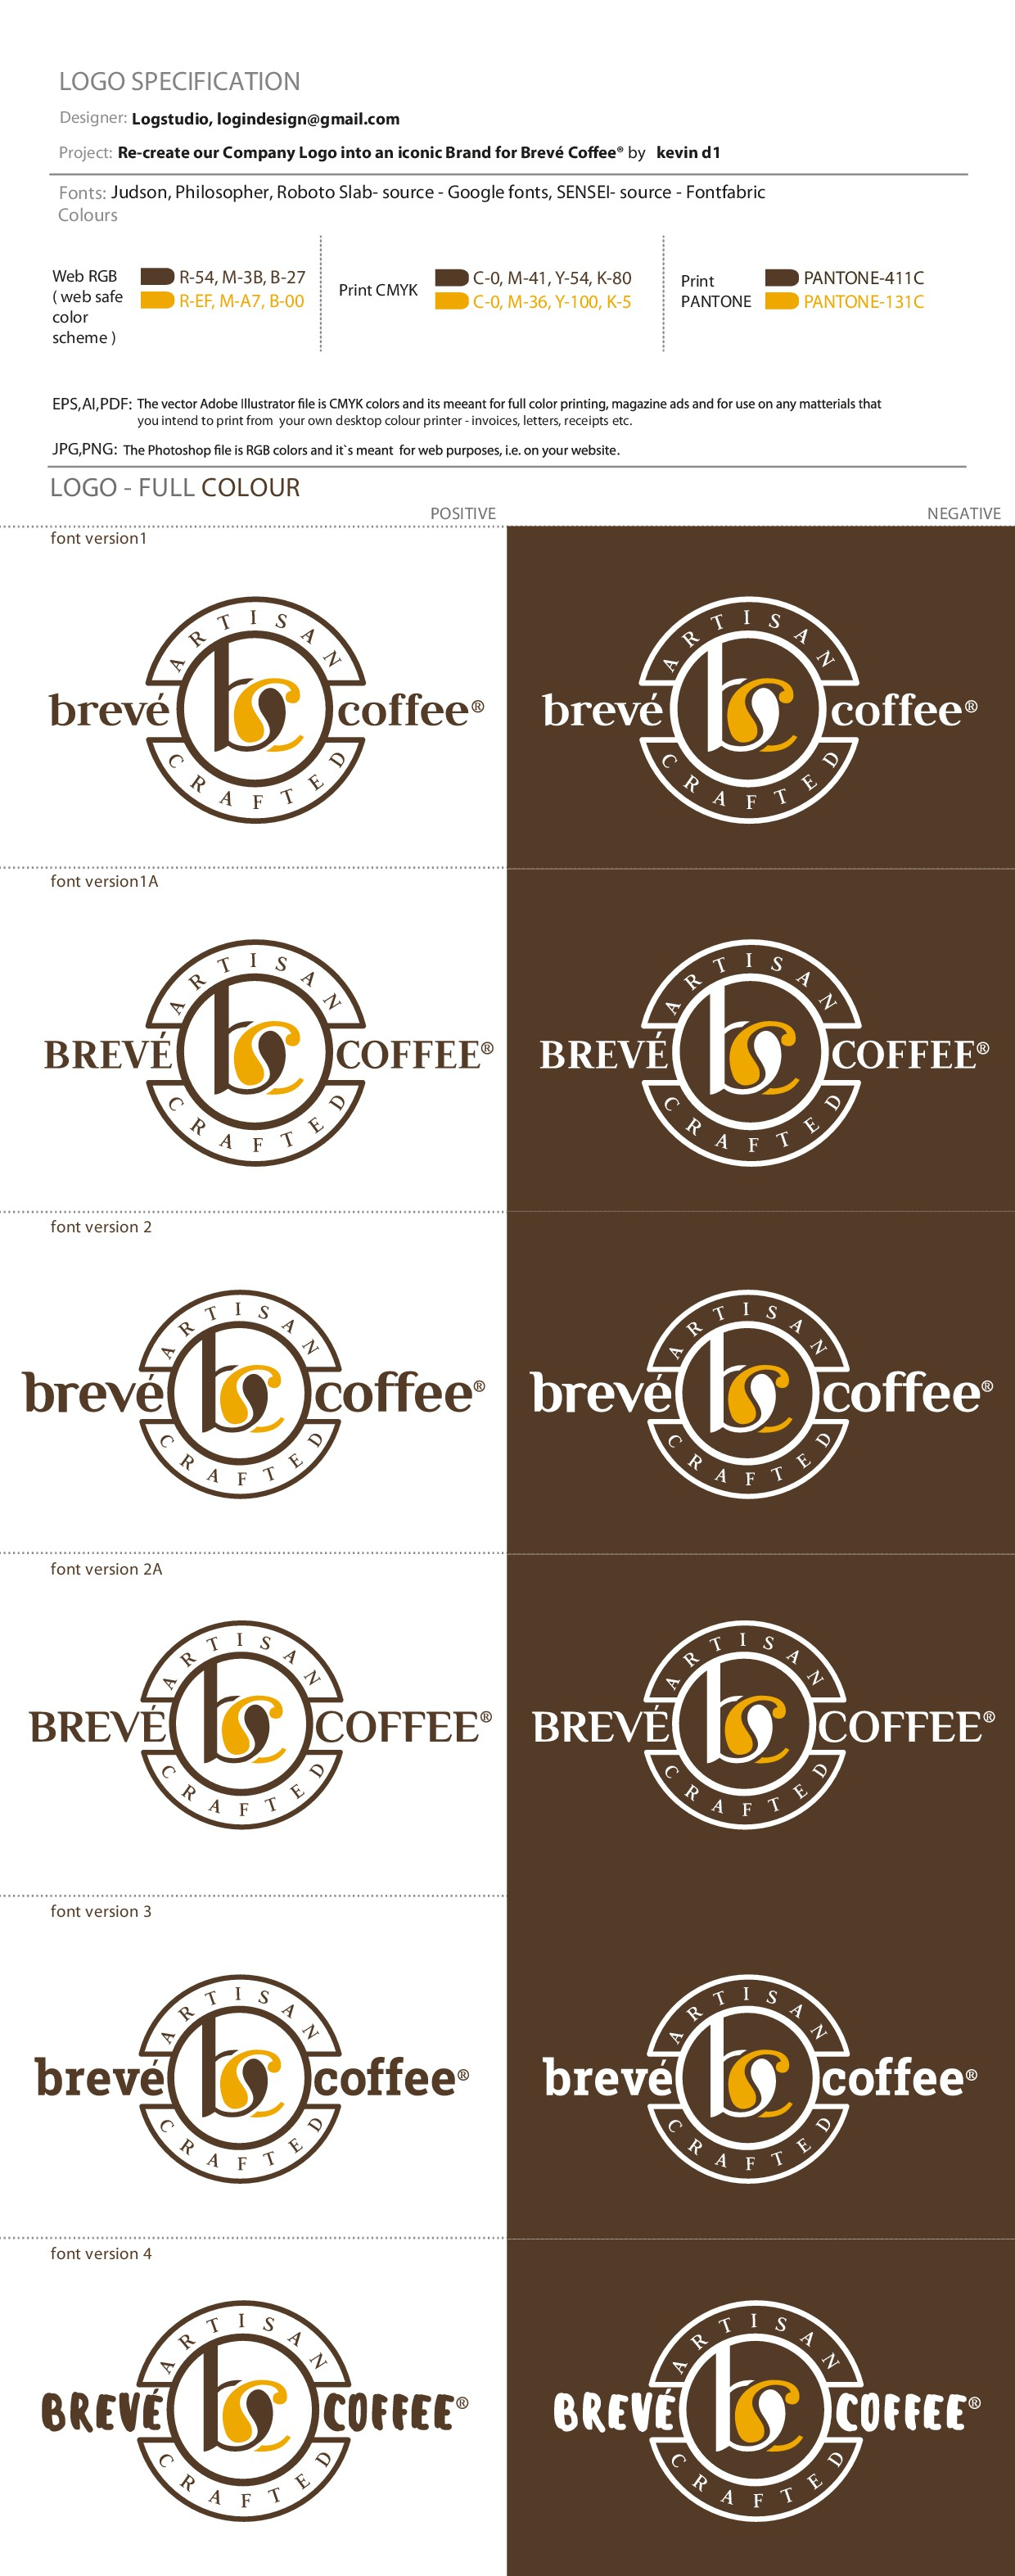 Re-create our Company Logo into an iconic Brand for Brevé Coffee®